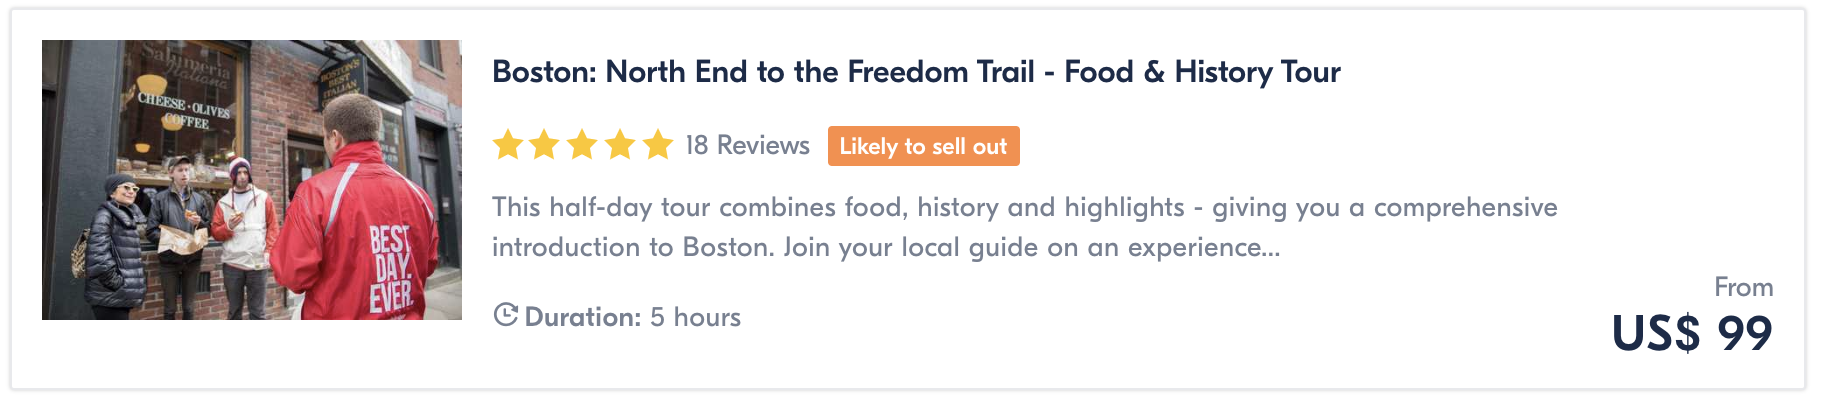 food tour things to do in boston